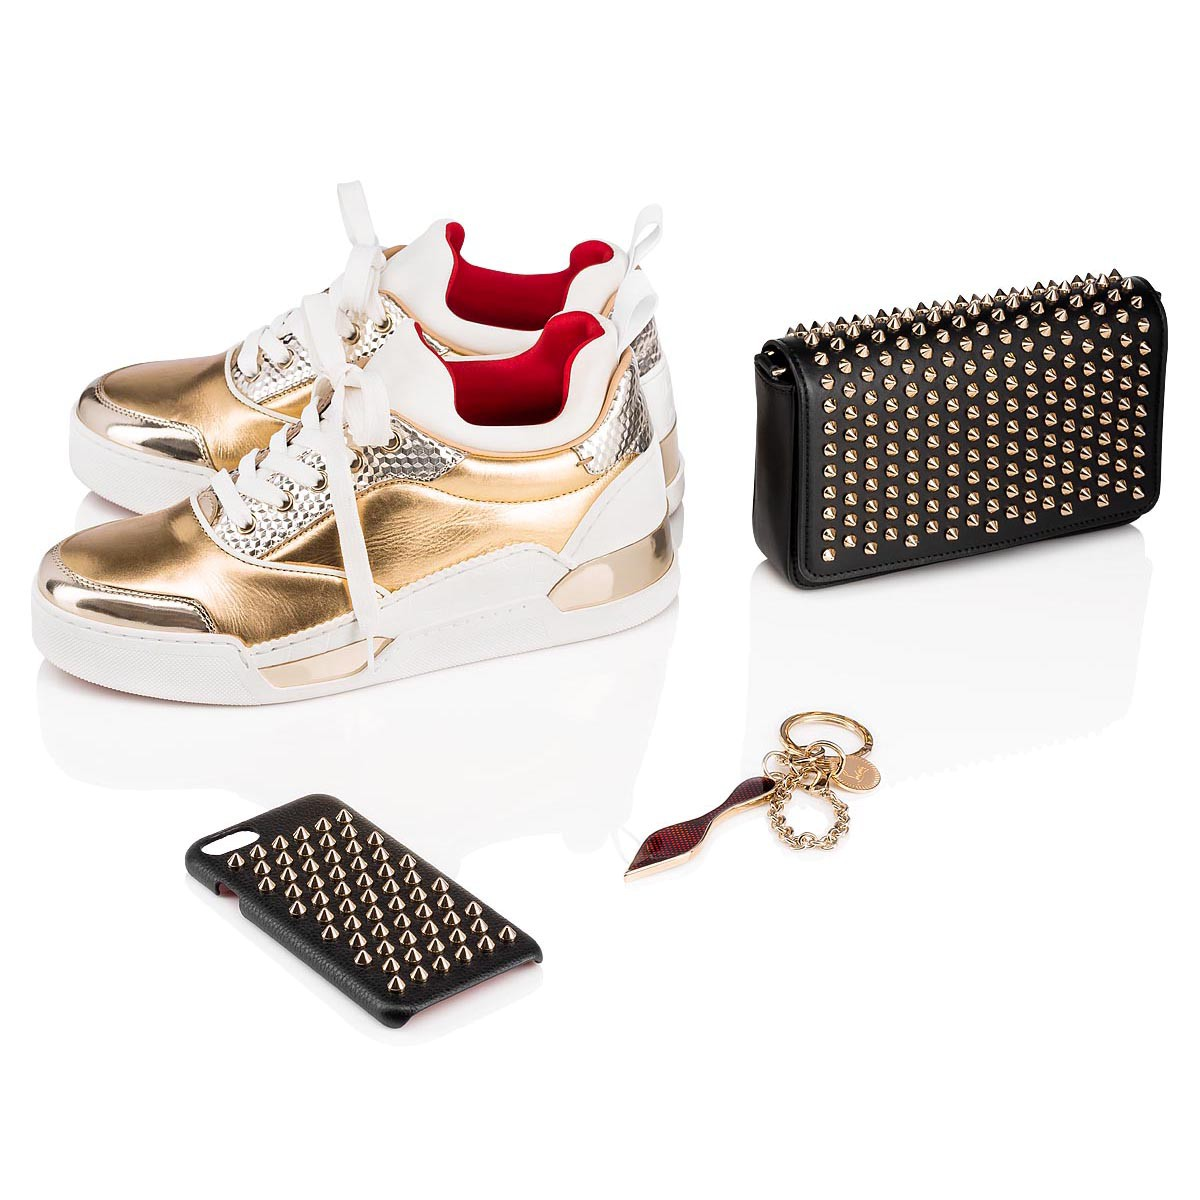 Small Leather Goods - Red Sole Keyring - Christian Louboutin